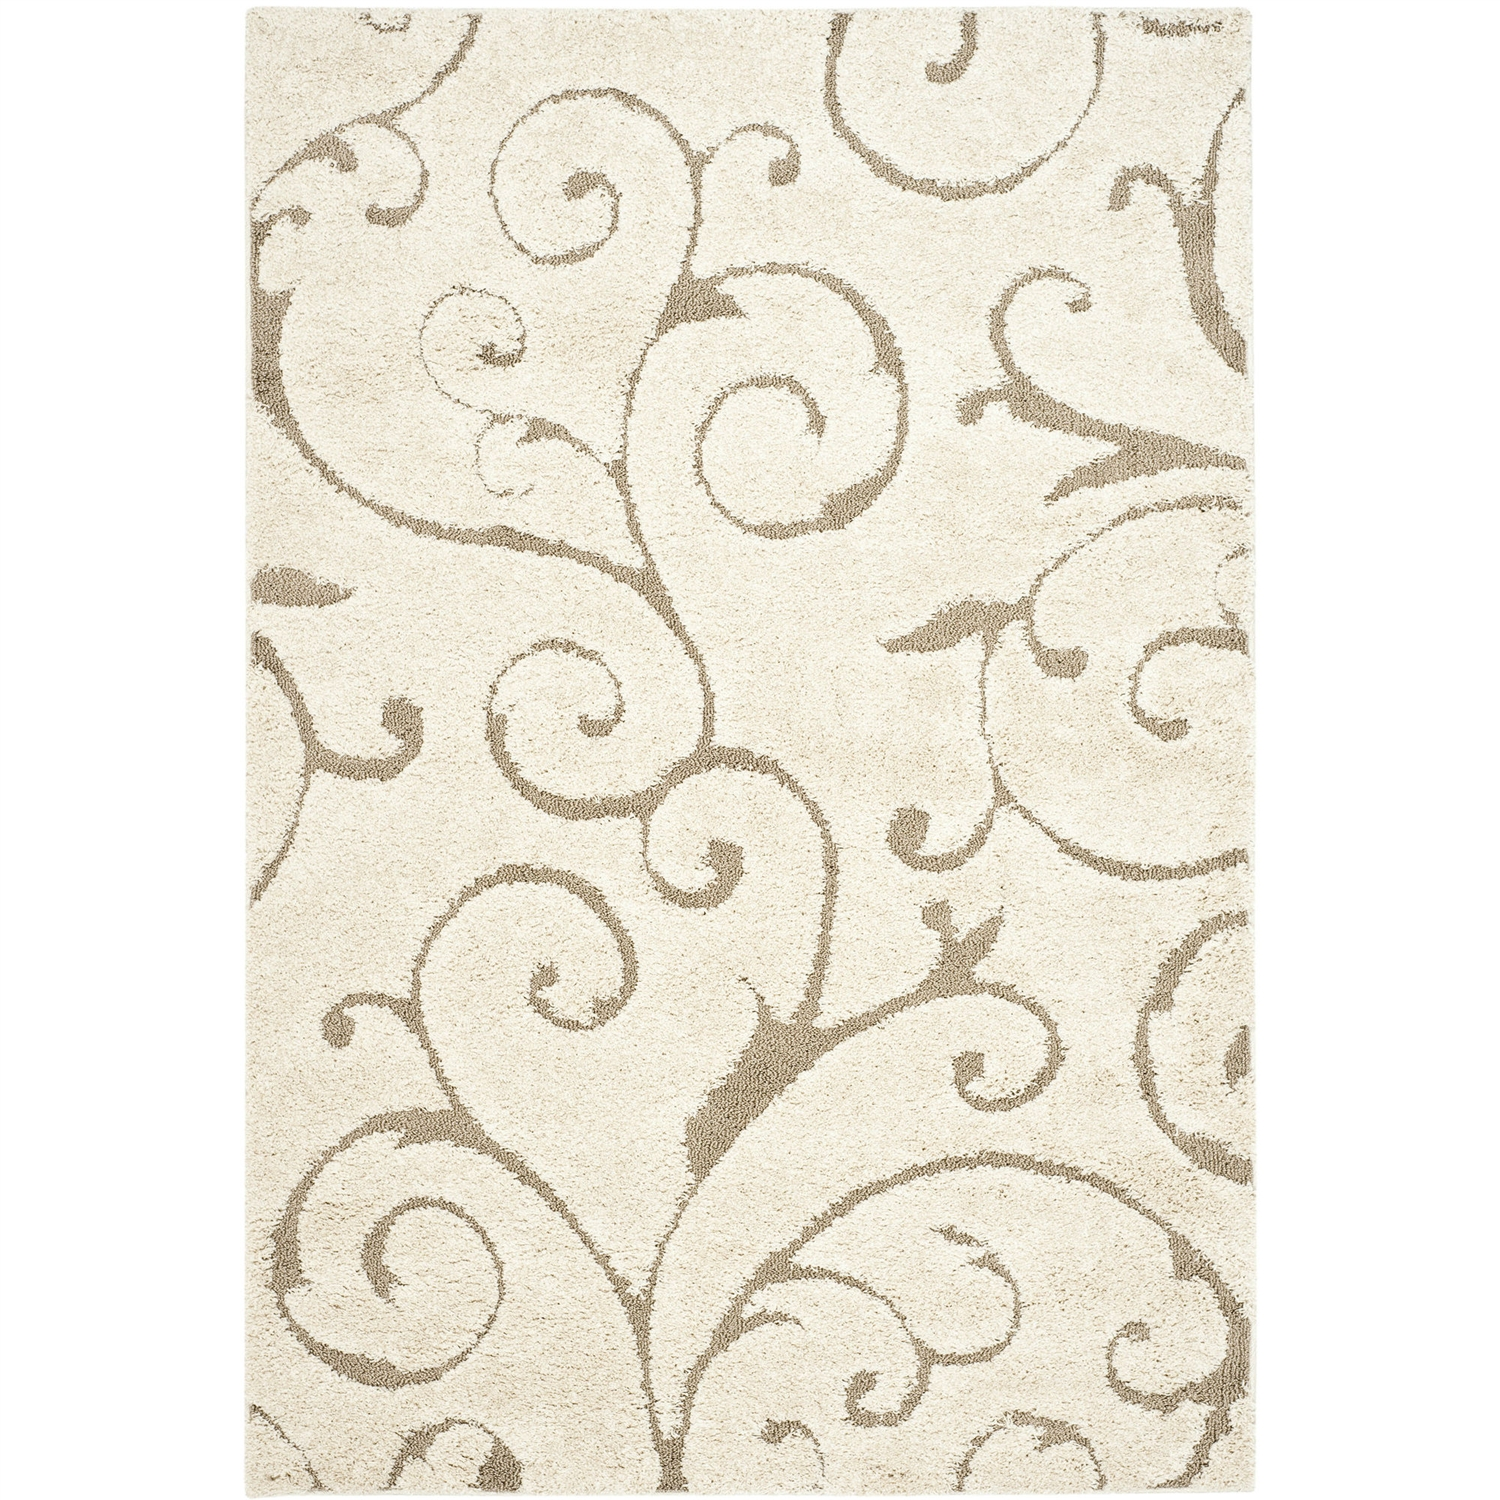 4-ft x 6-ft Modern Beige Shag Area Rug with Floral Swirl Pattern,  SFBR7795 :  This 4-ft x 6-ft Modern Beige Shag Area Rug with Floral Swirl Pattern features a strikingly modern floral design that can coordinate well with any upholstery in your house. A luminous cream background coupled with beige accents is sure to liven up your living room or foyer instantly. Plus, a thin, cream border surrounding the design gives your rug a neat look. Soft and comfortable to walk on, this carpet provides adequate cushioning for your feet. A 100% polypropylene construction further adds to the durability of this beautiful rug. As it is made in a power loom, the floral design throughout this rug is consistent. Simple, classic, and elegant, the rug can also be used in your bedroom or as a runner in the hallway between the bedroom and bathroom. This power-loomed rug has an extremely warm and inviting plush texture. Its intricate lines and curves are sure to win you many compliments. This versatile rug is available in different sizes and shapes to suit your various designing requirements. With professional cleaning, this shag rug offers warmth to your room for years. Don't forget to couple it with a rug pad for extra grip and to keep the rug in place.